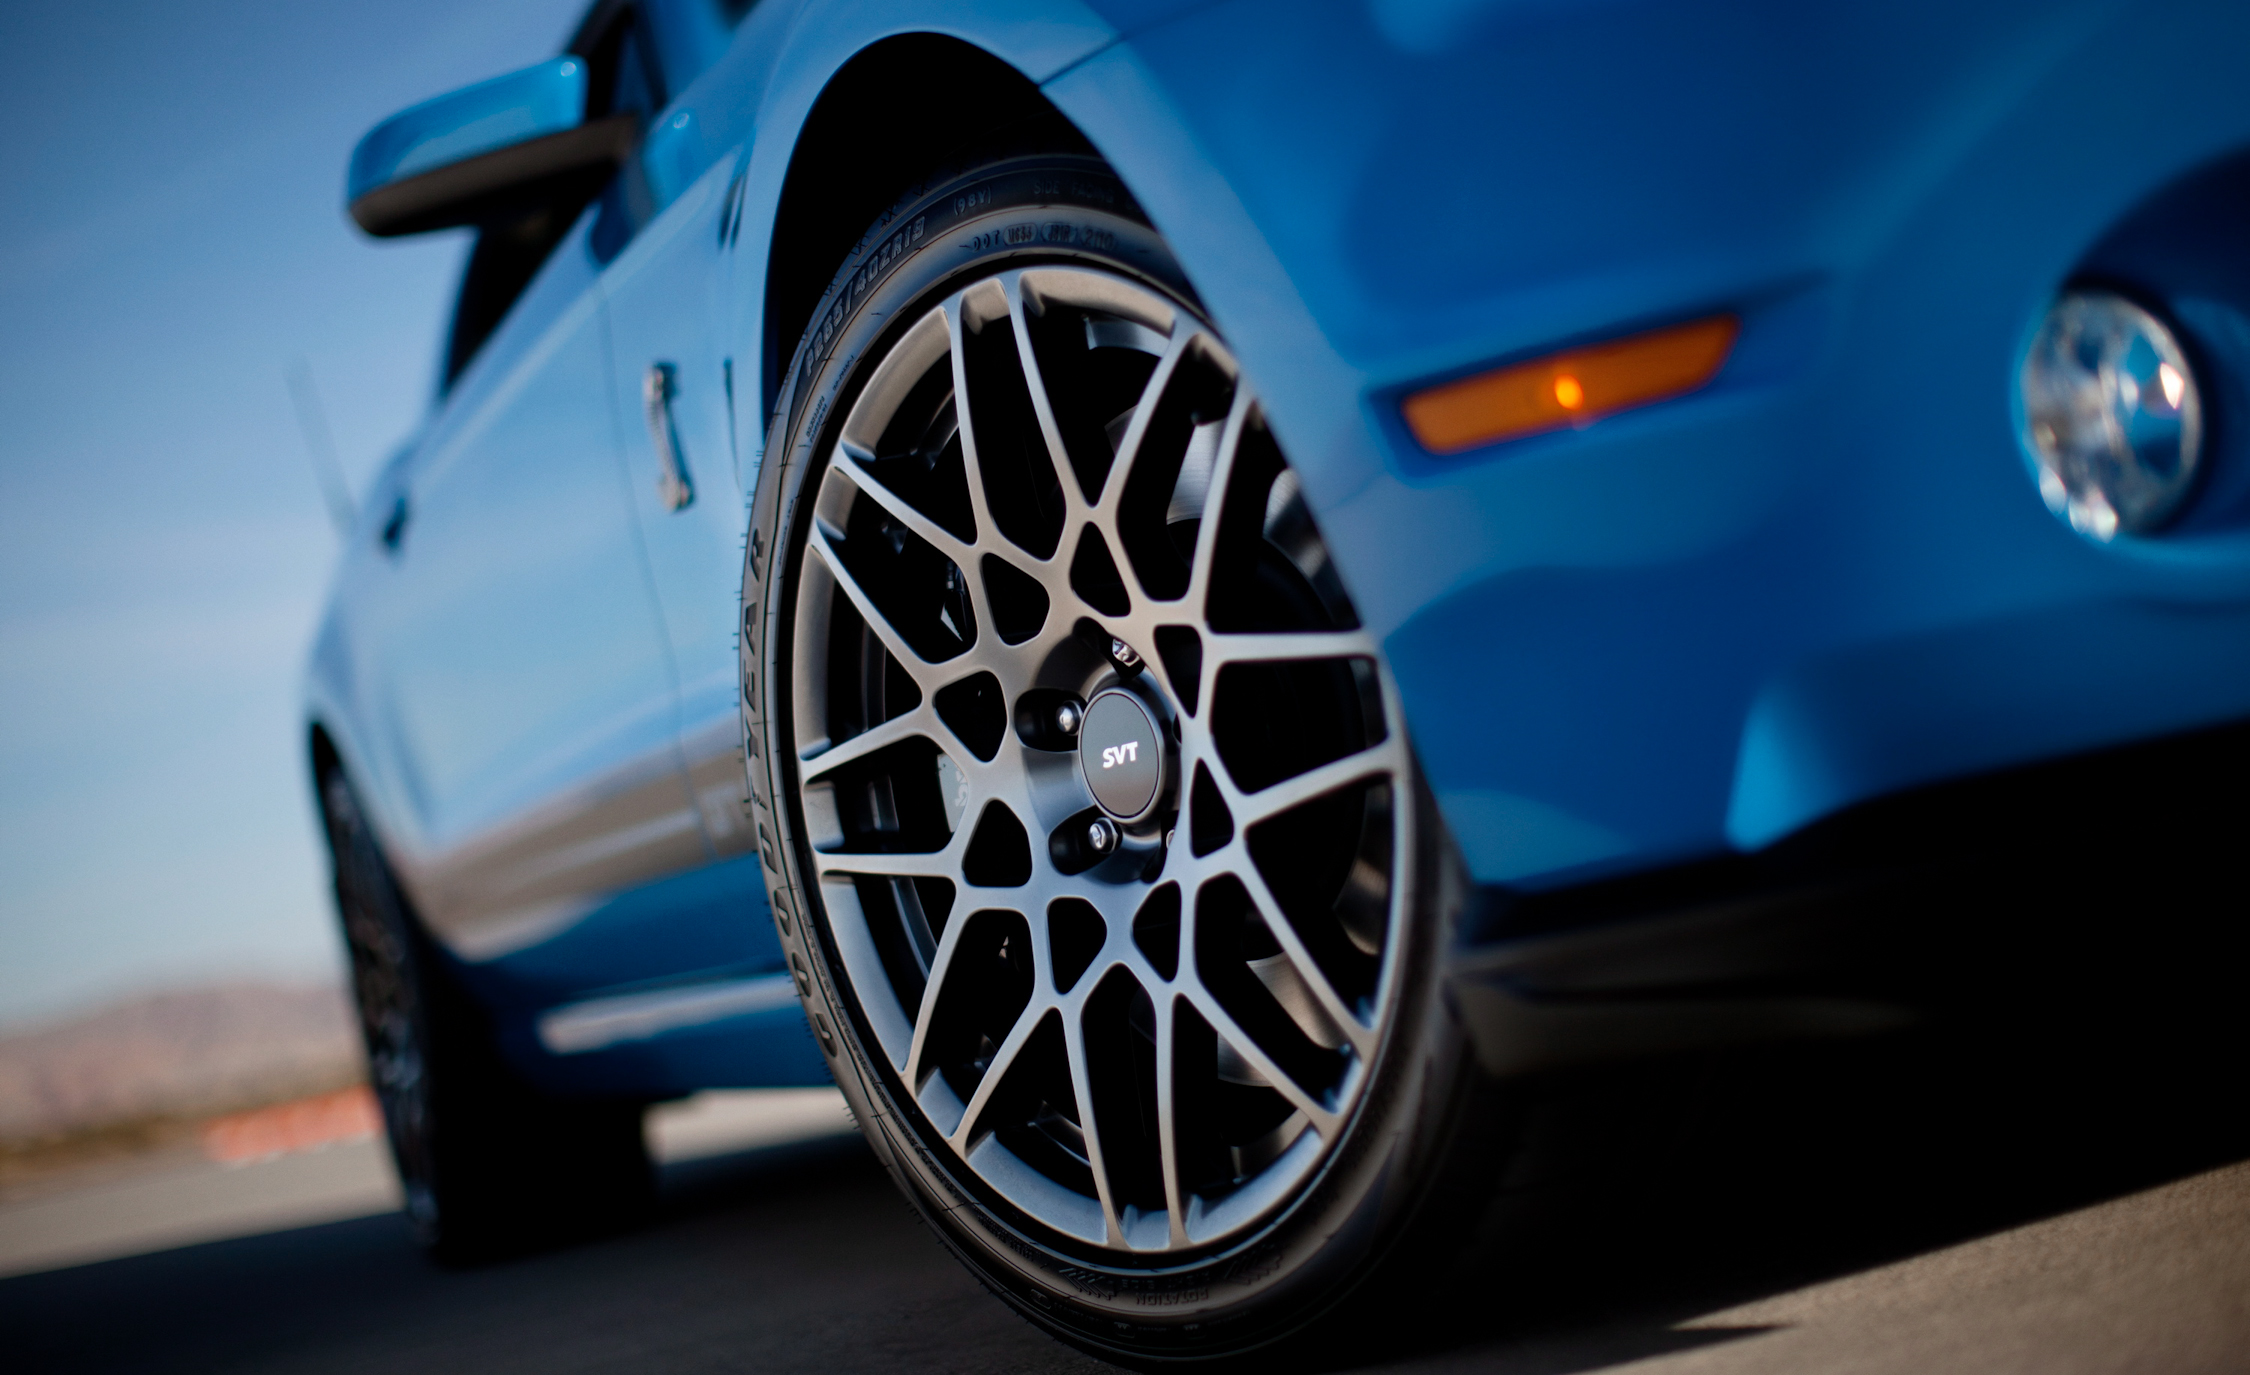 2013 Ford Mustang Shelby GT500 Blue Exterior View Wheel Velg (Photo 8 of 47)